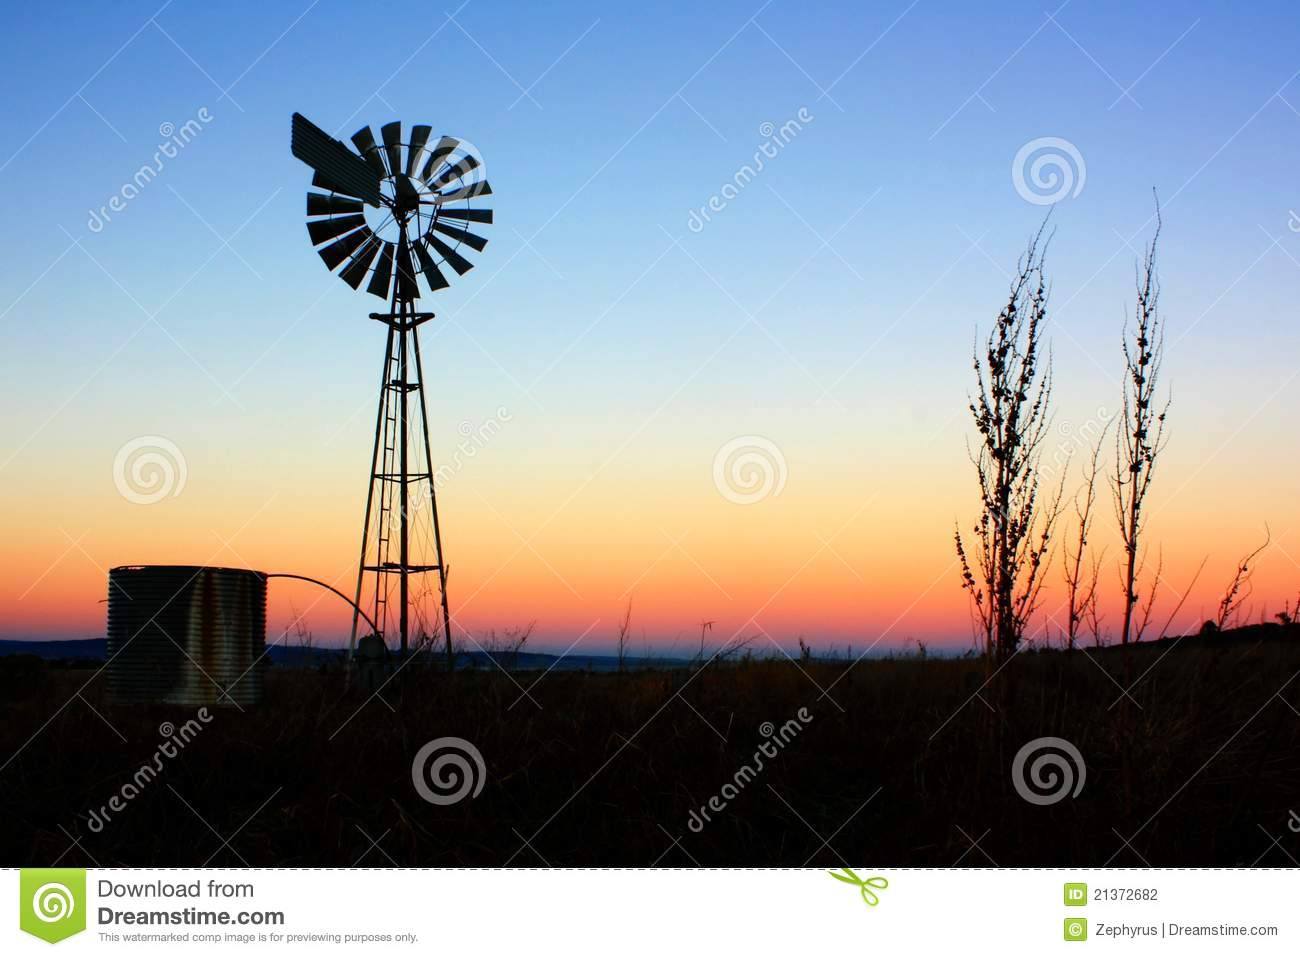 Windmill Silhouette At Sunrise. Stock Photography - Image: 21372682